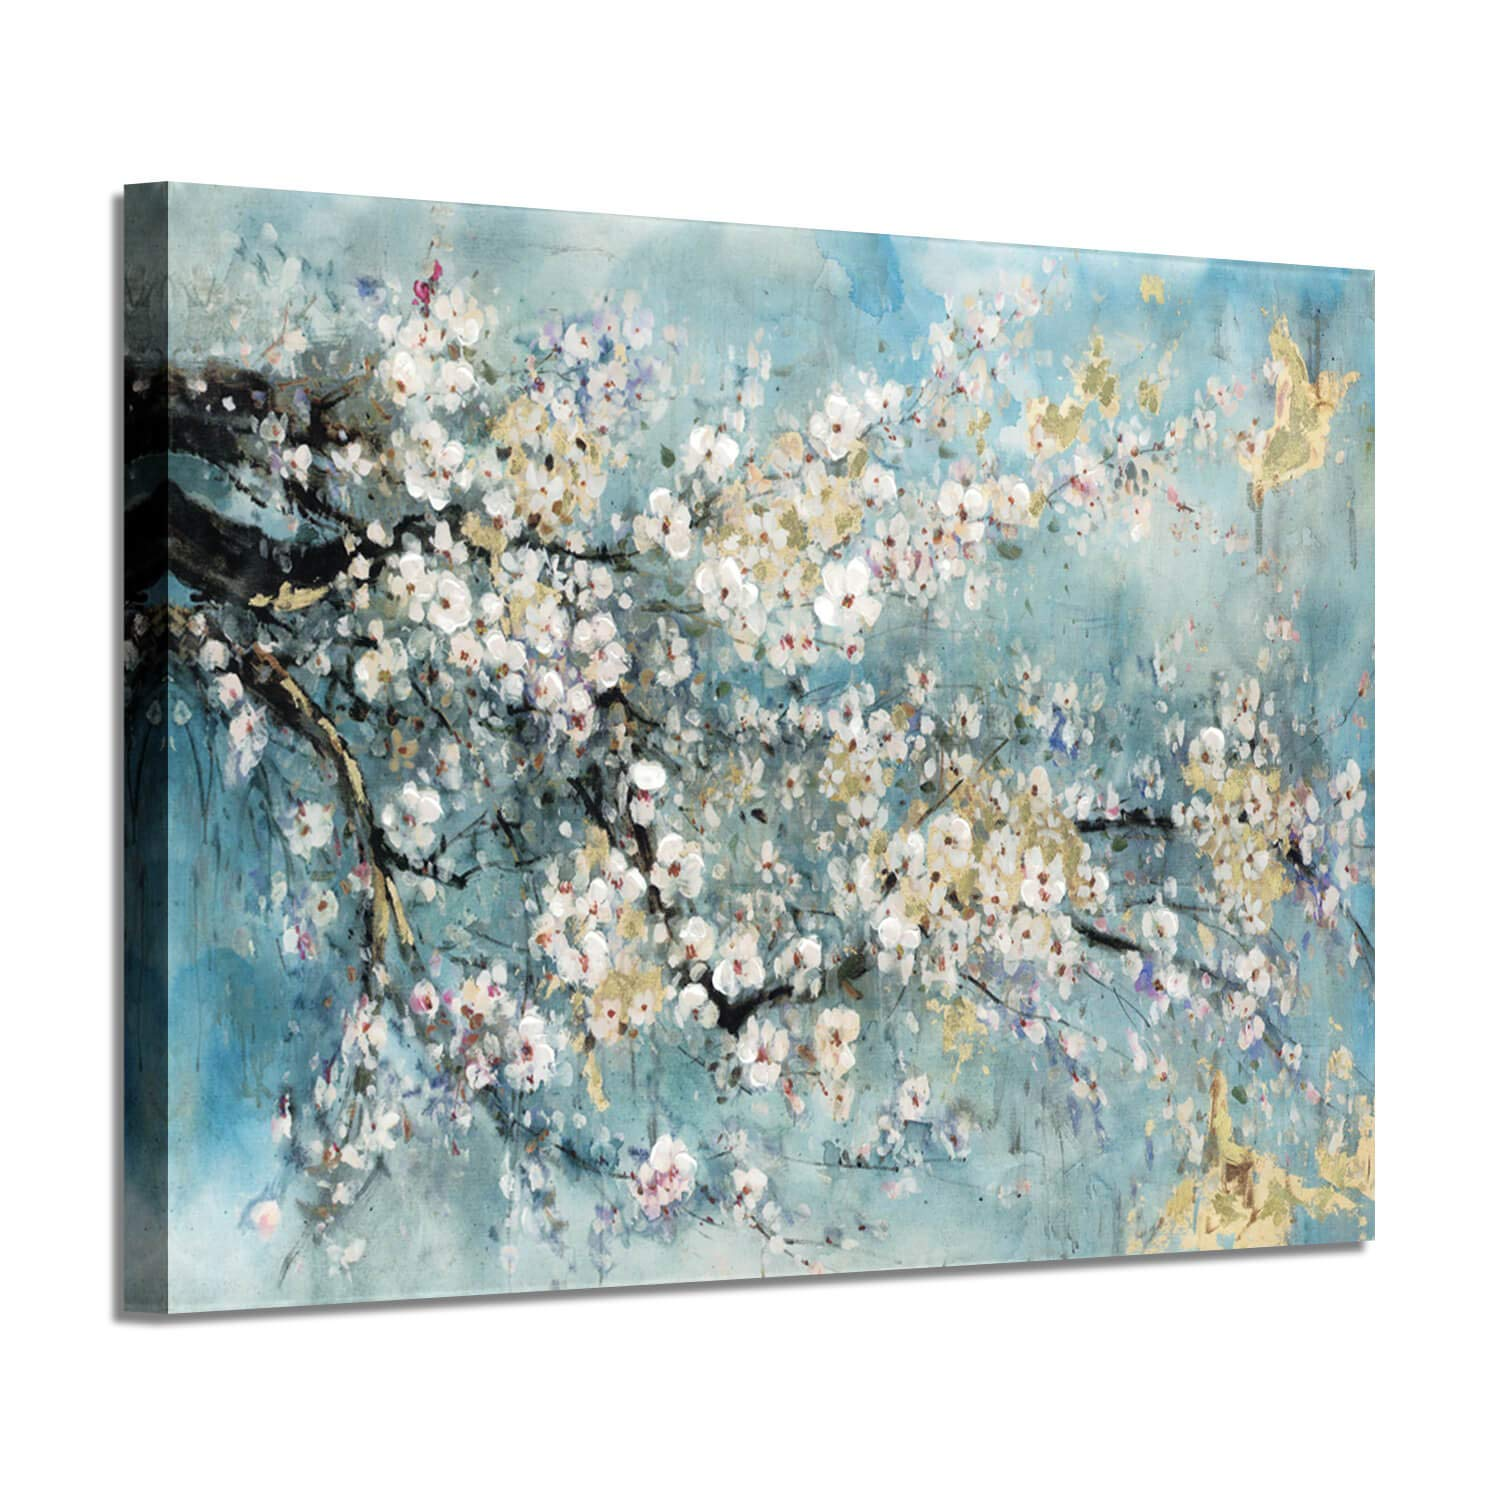 Abstract Canvas Painting Flower Picture: Teal Floral Golden Foil Wall Art on Canvas for Office (36''W x 24''H,Multi-Sized)